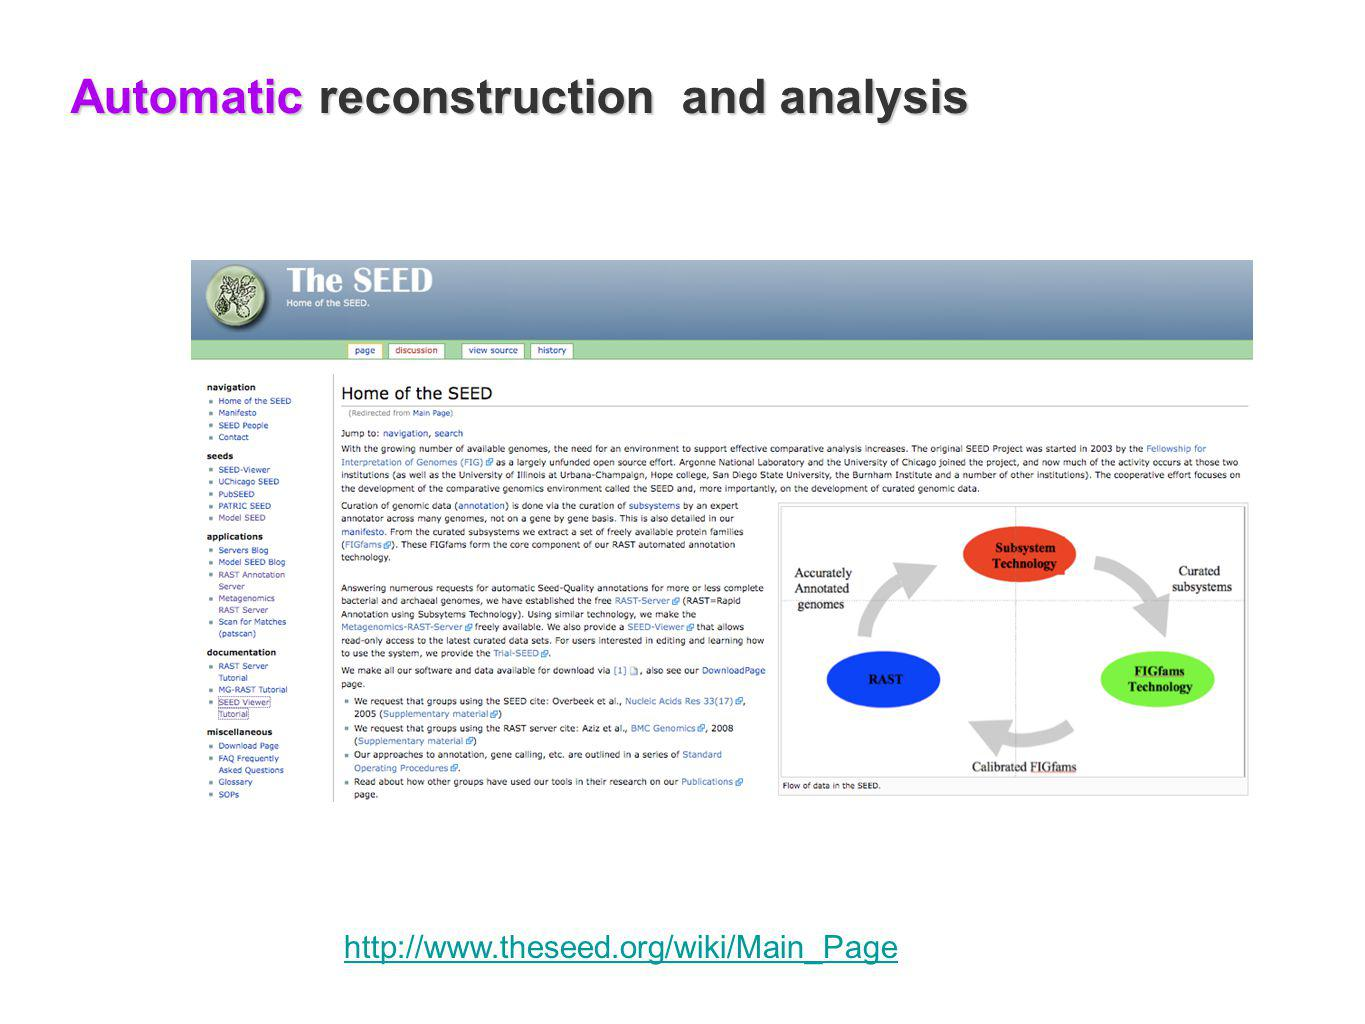 Automatic reconstruction and analysis http://www.theseed.org/wiki/Main_Page